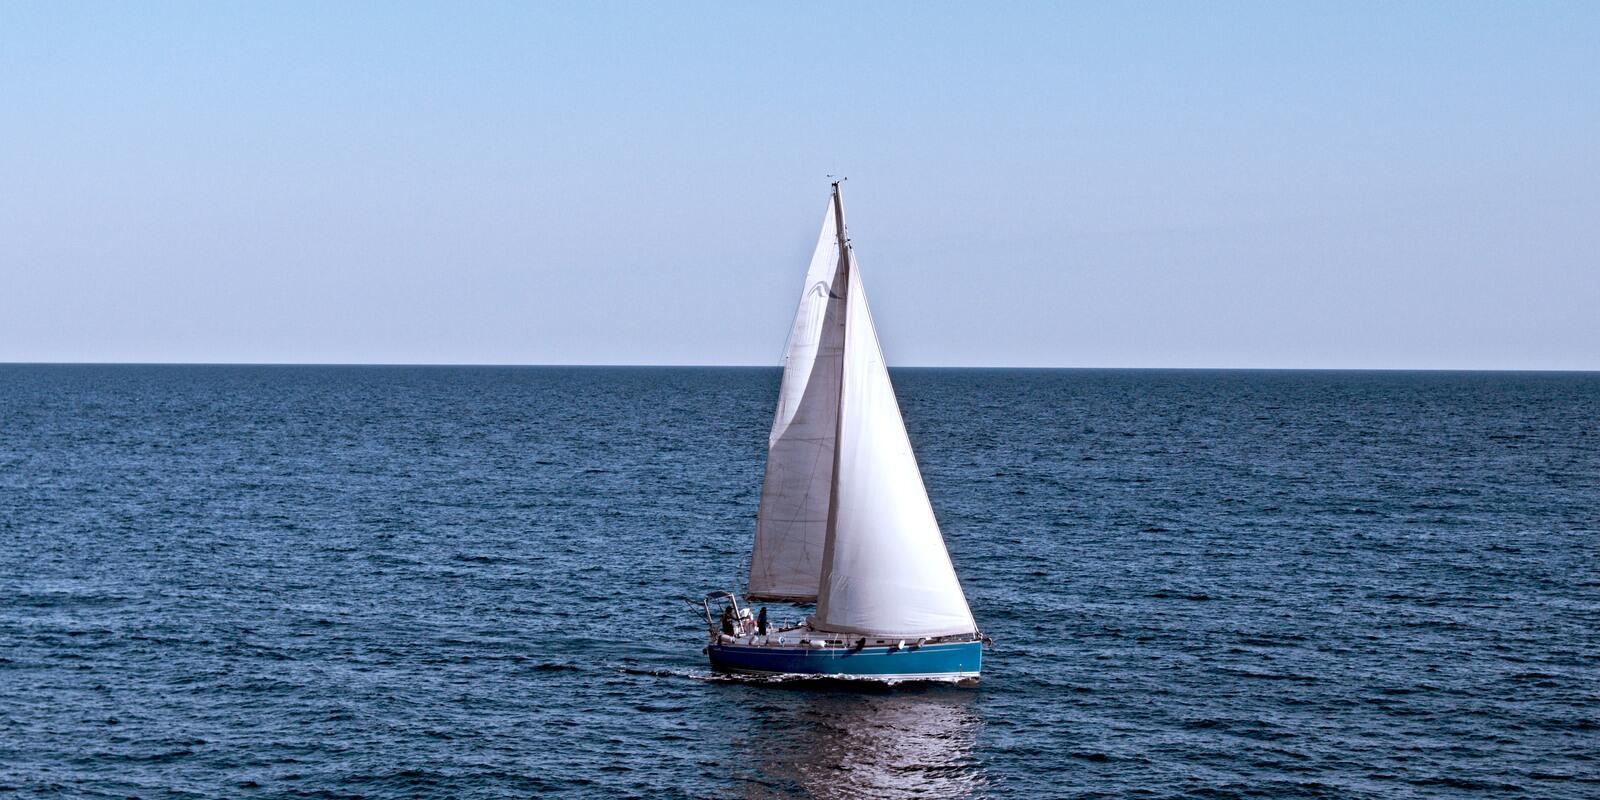 April 25 - learn to sail on a sailing boat between Ibiza and Formentera